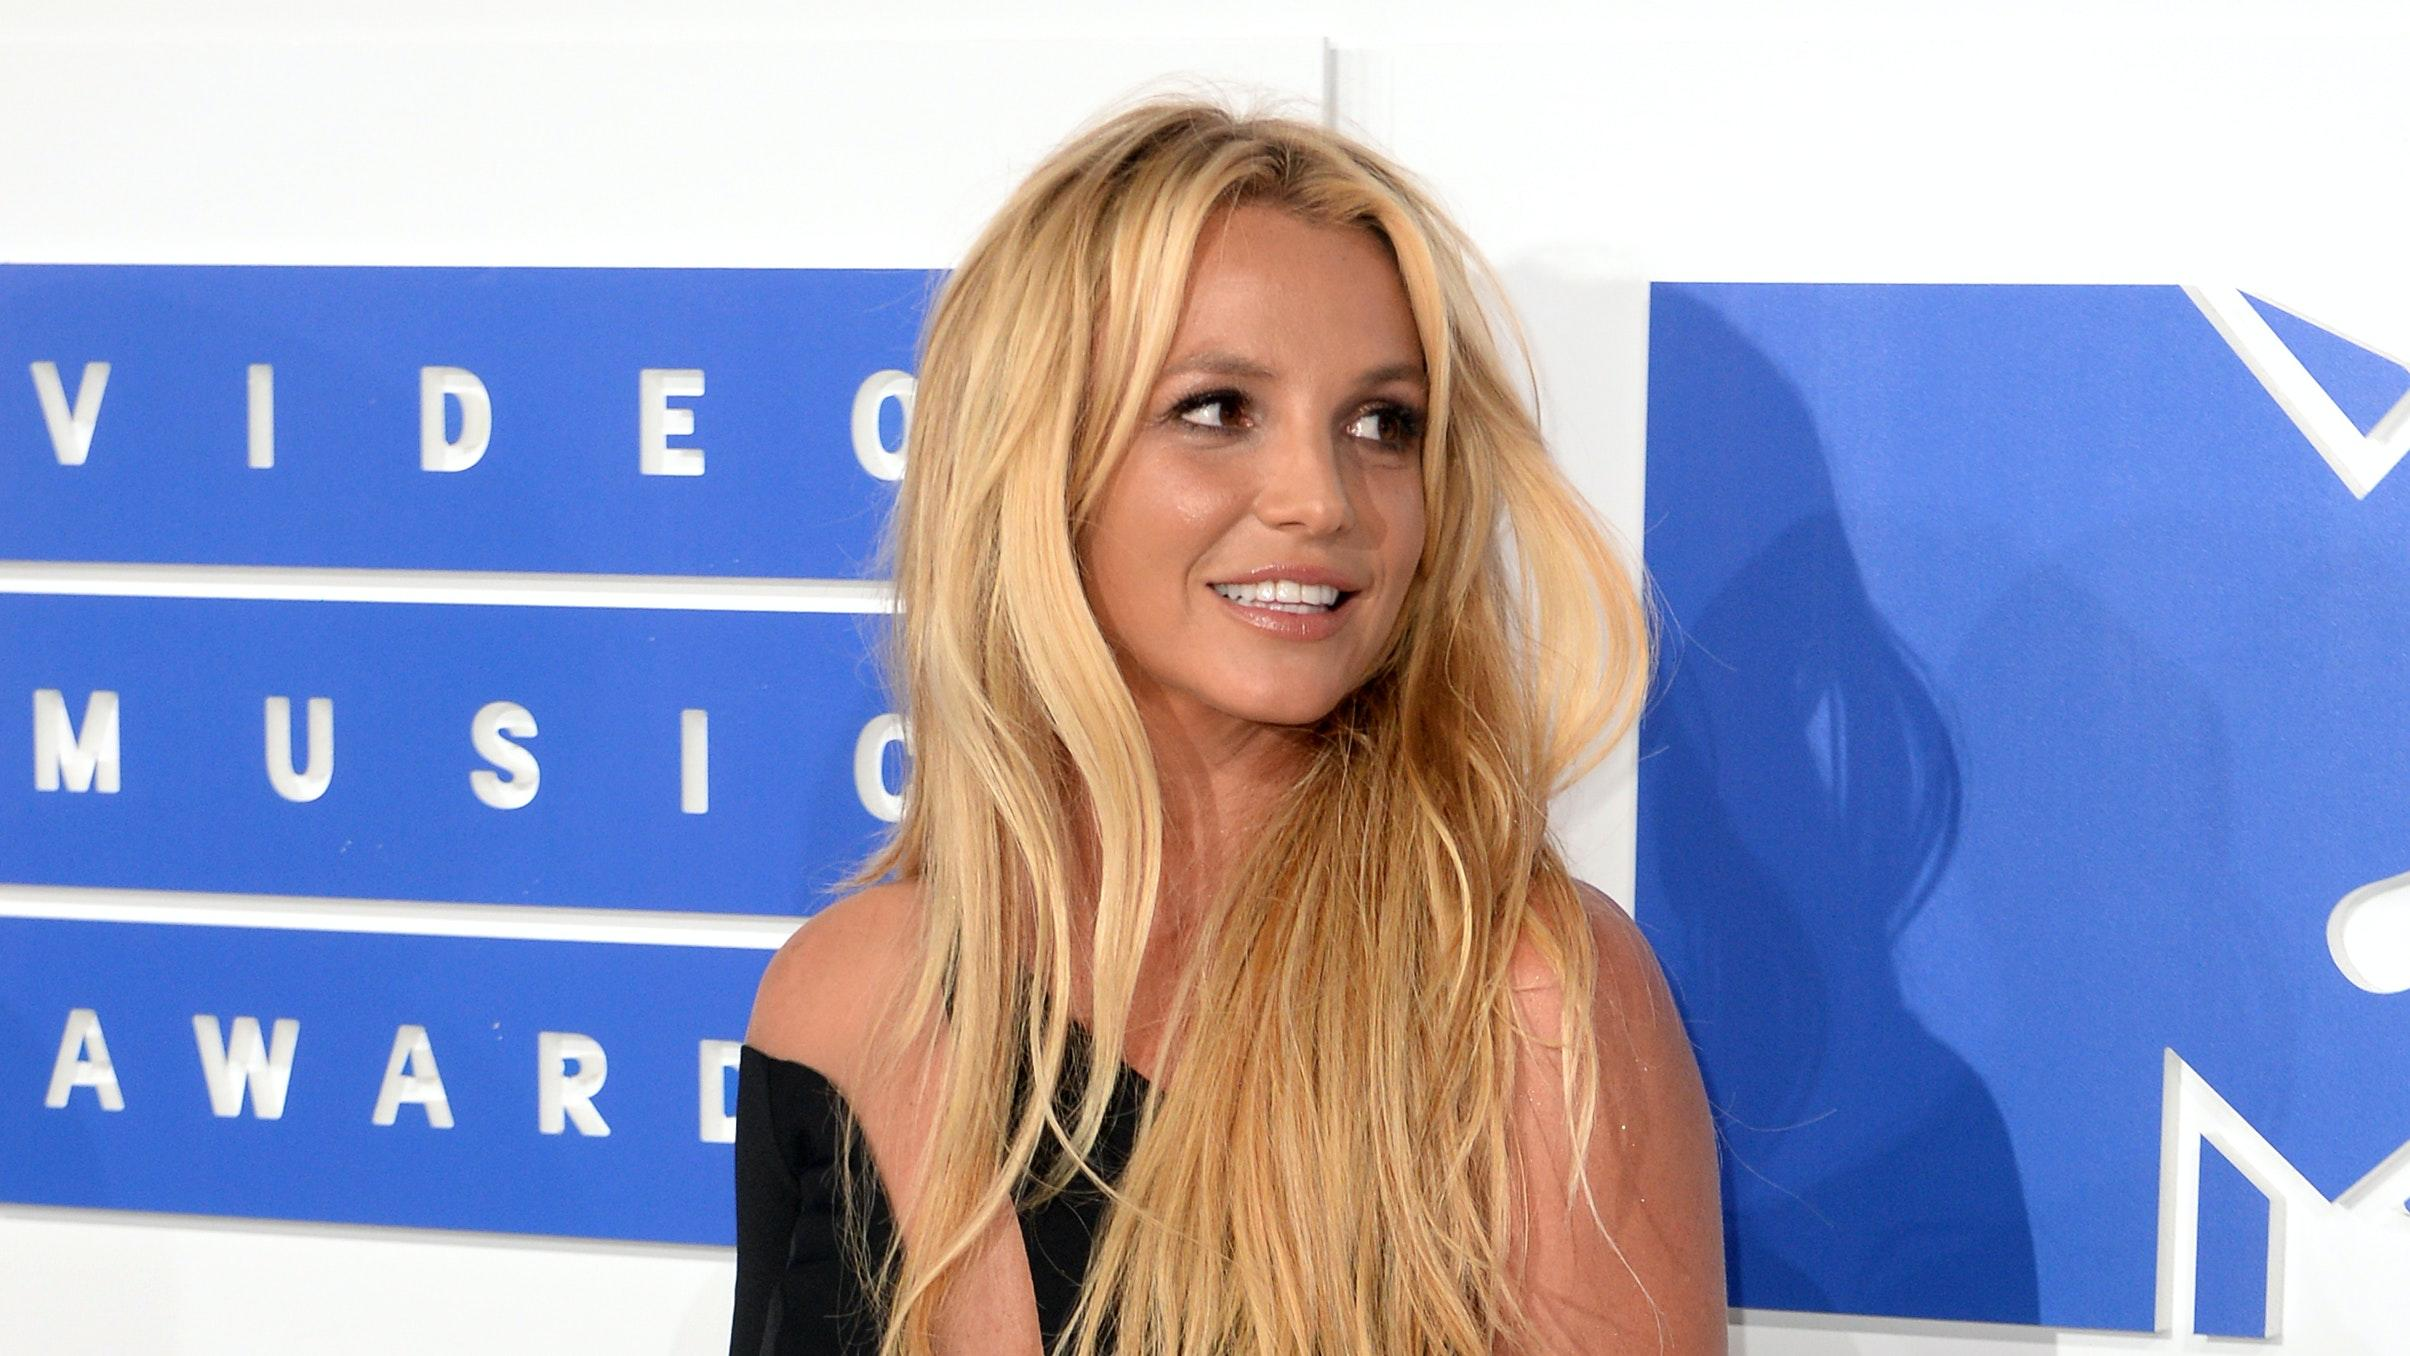 Britney Spears is 'afraid' of her father, court hears